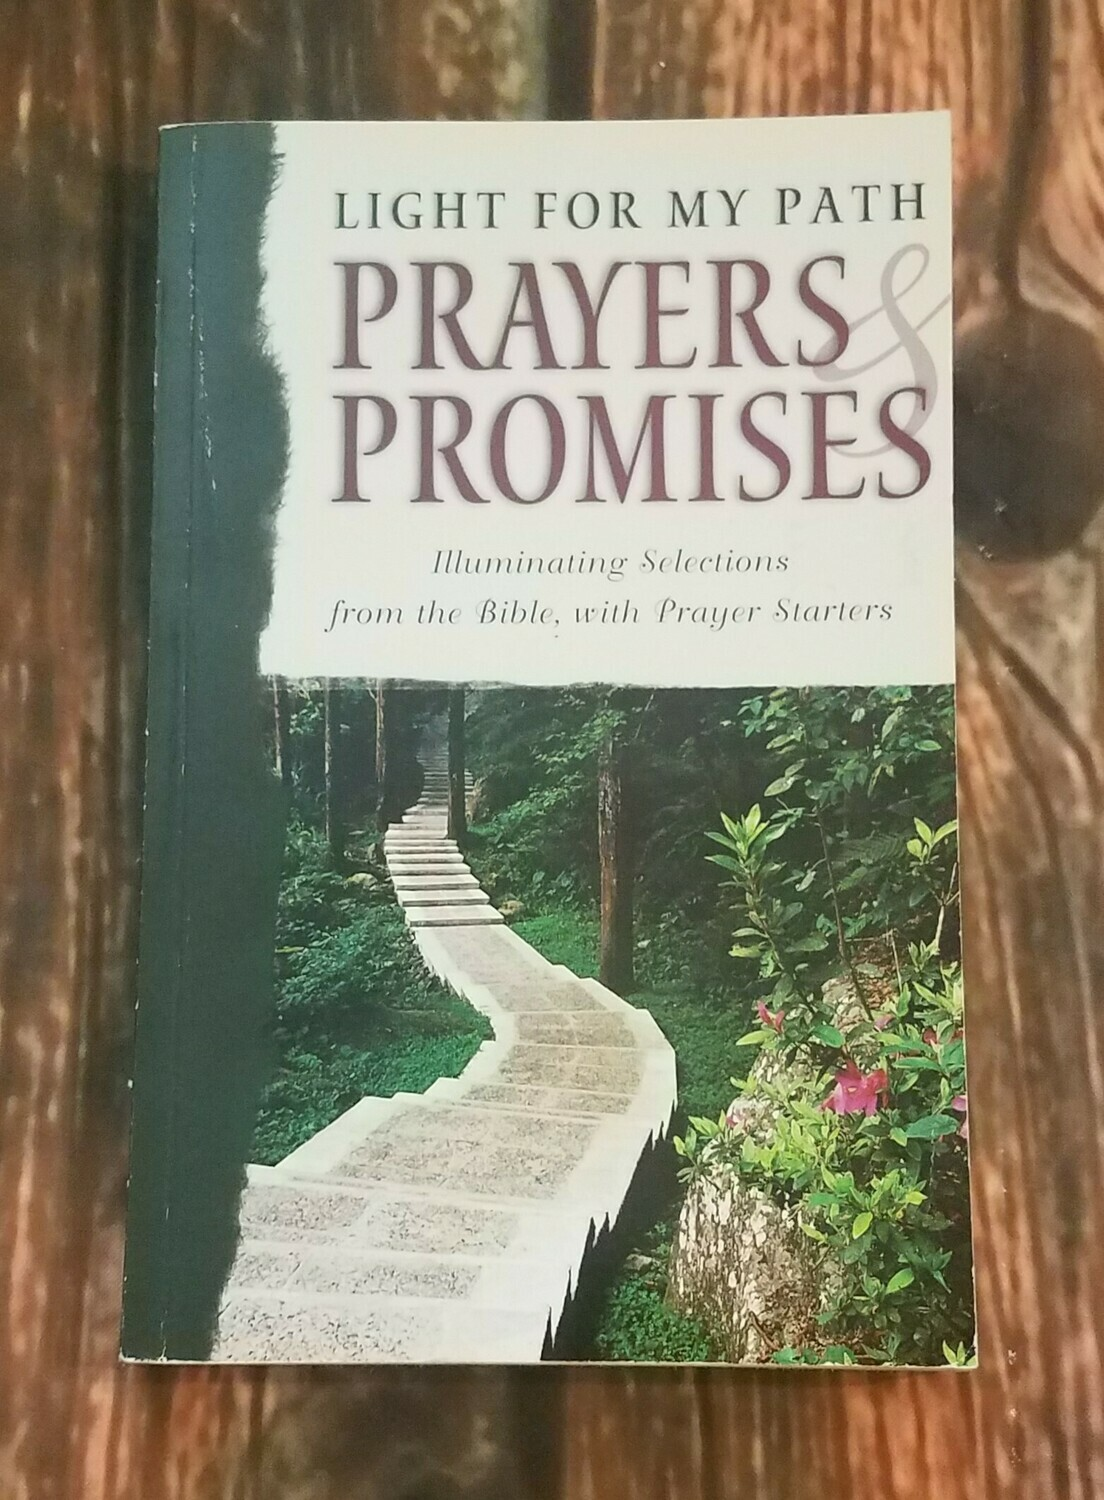 Light for My Path: Prayers and Promises by Barbour Publishing